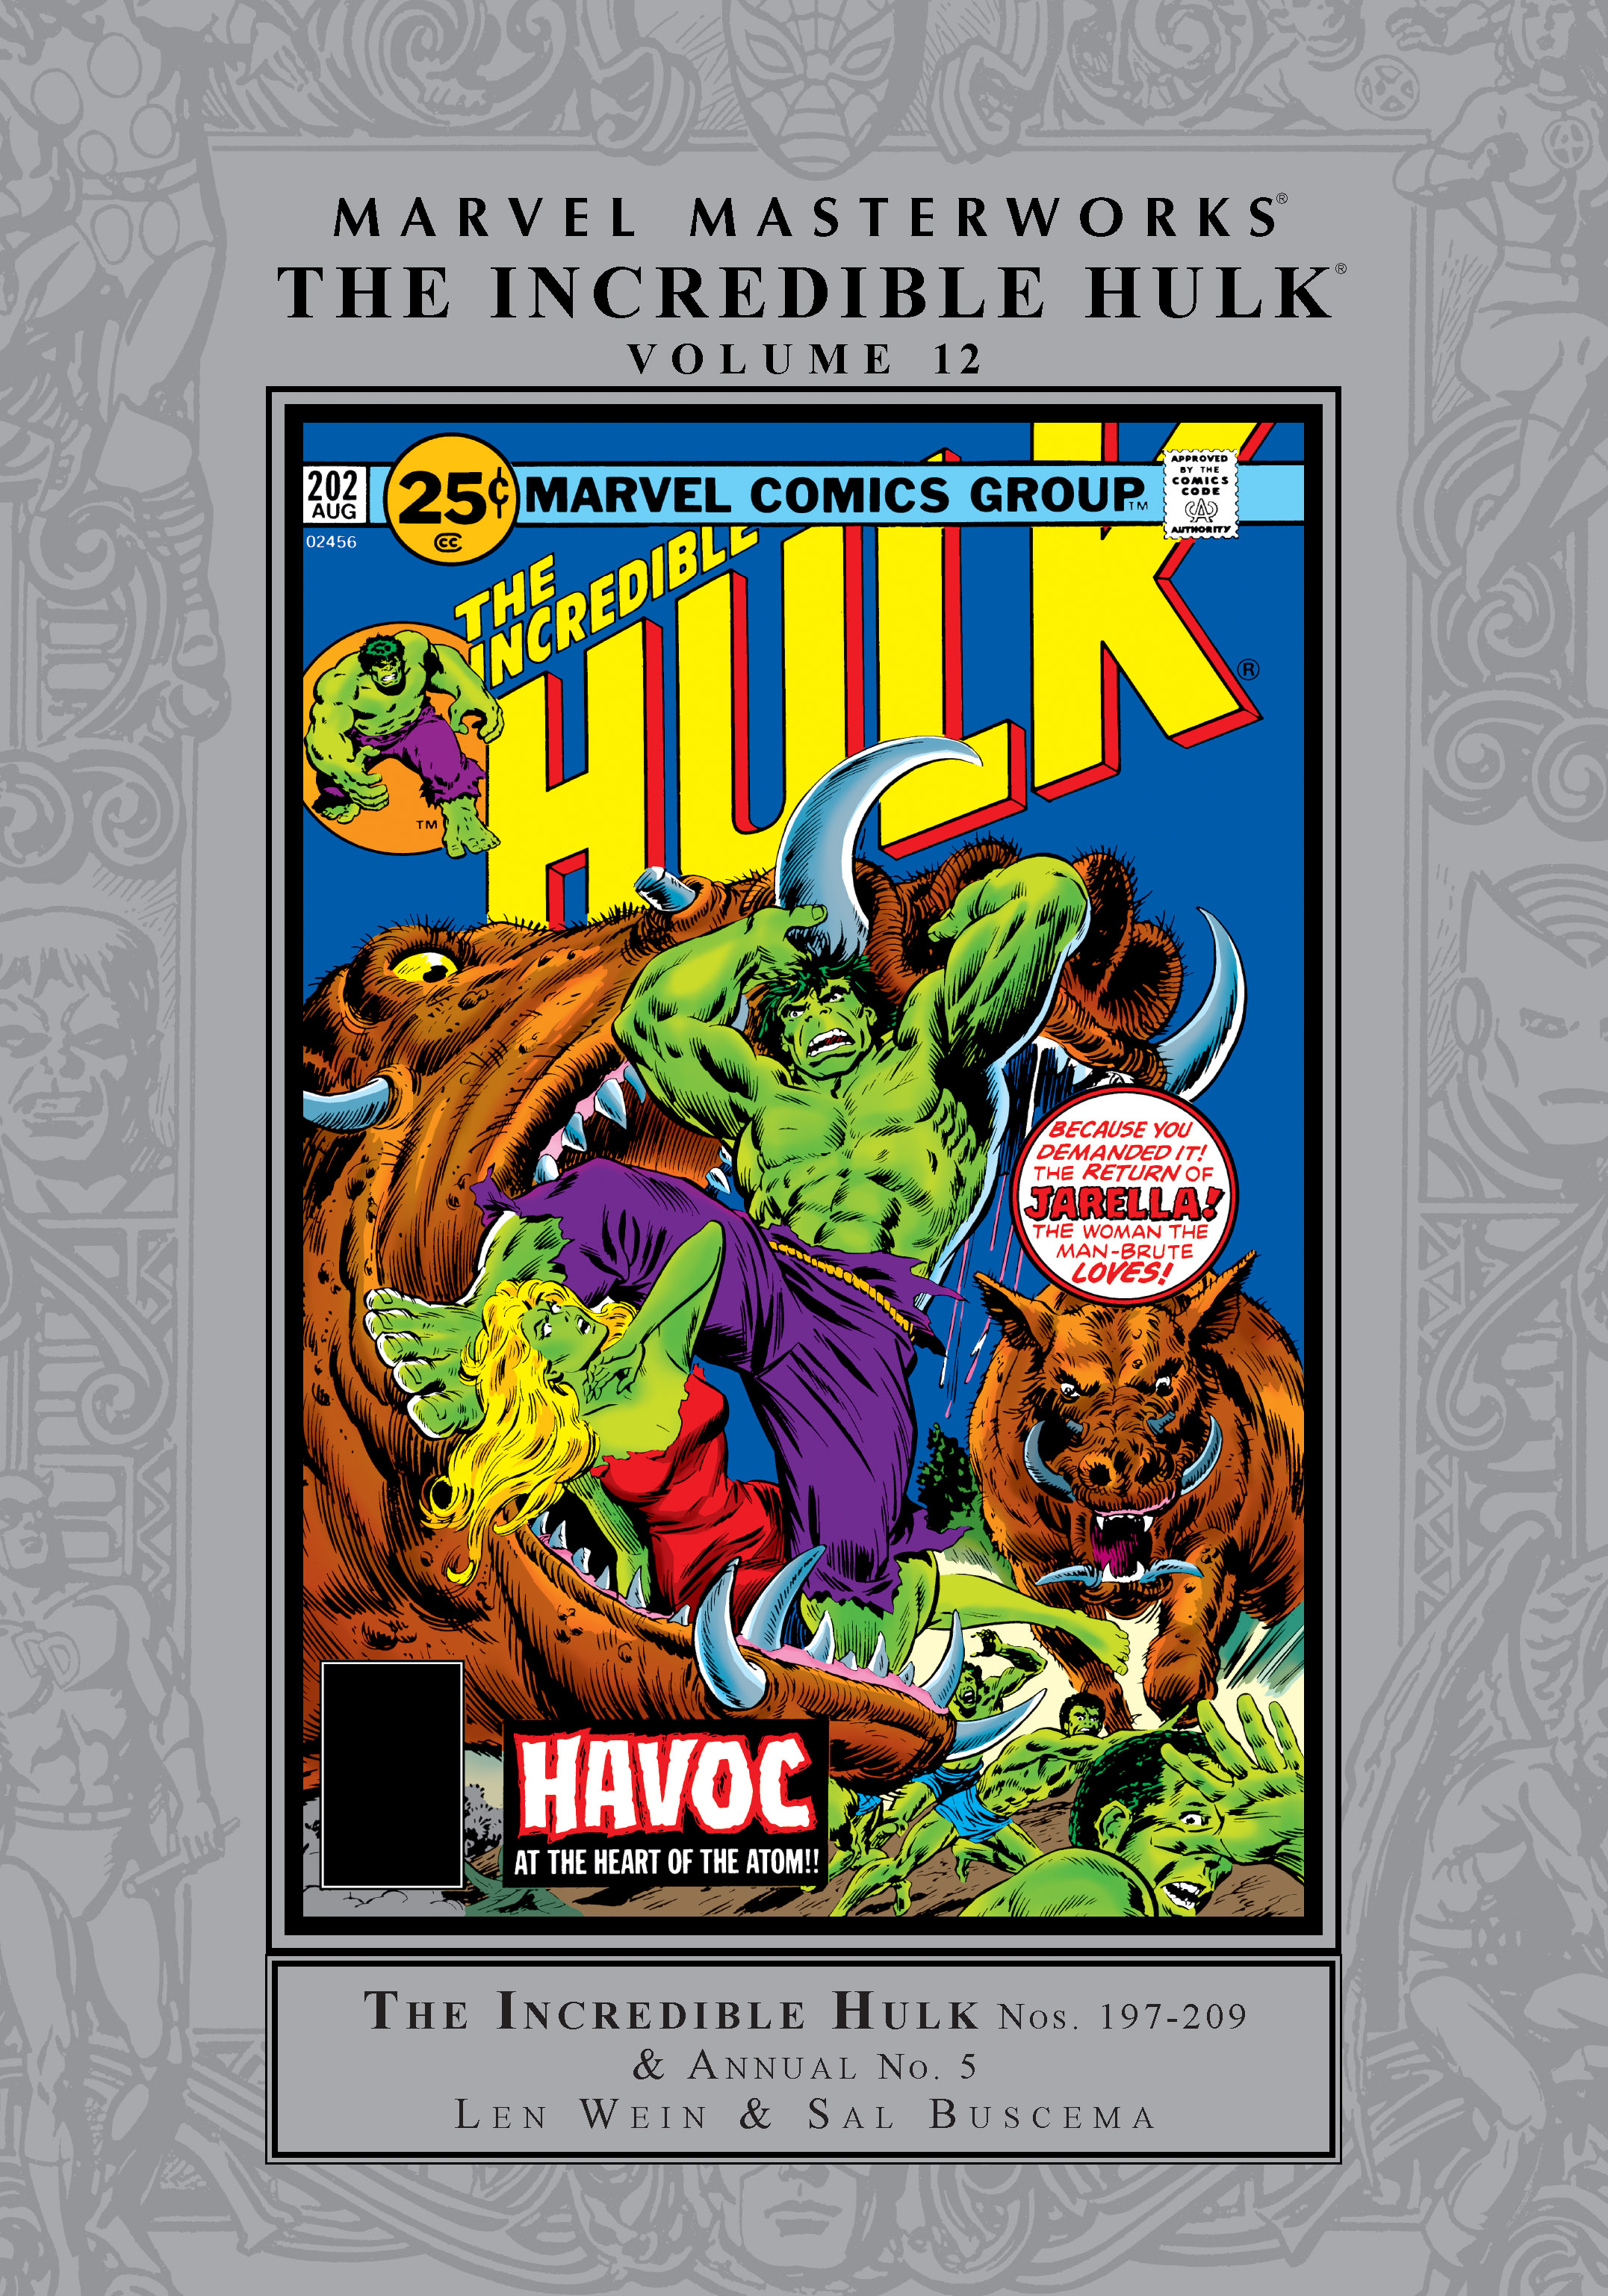 Marvel Masterworks: The Incredible Hulk Vol. 12 (Hardcover)